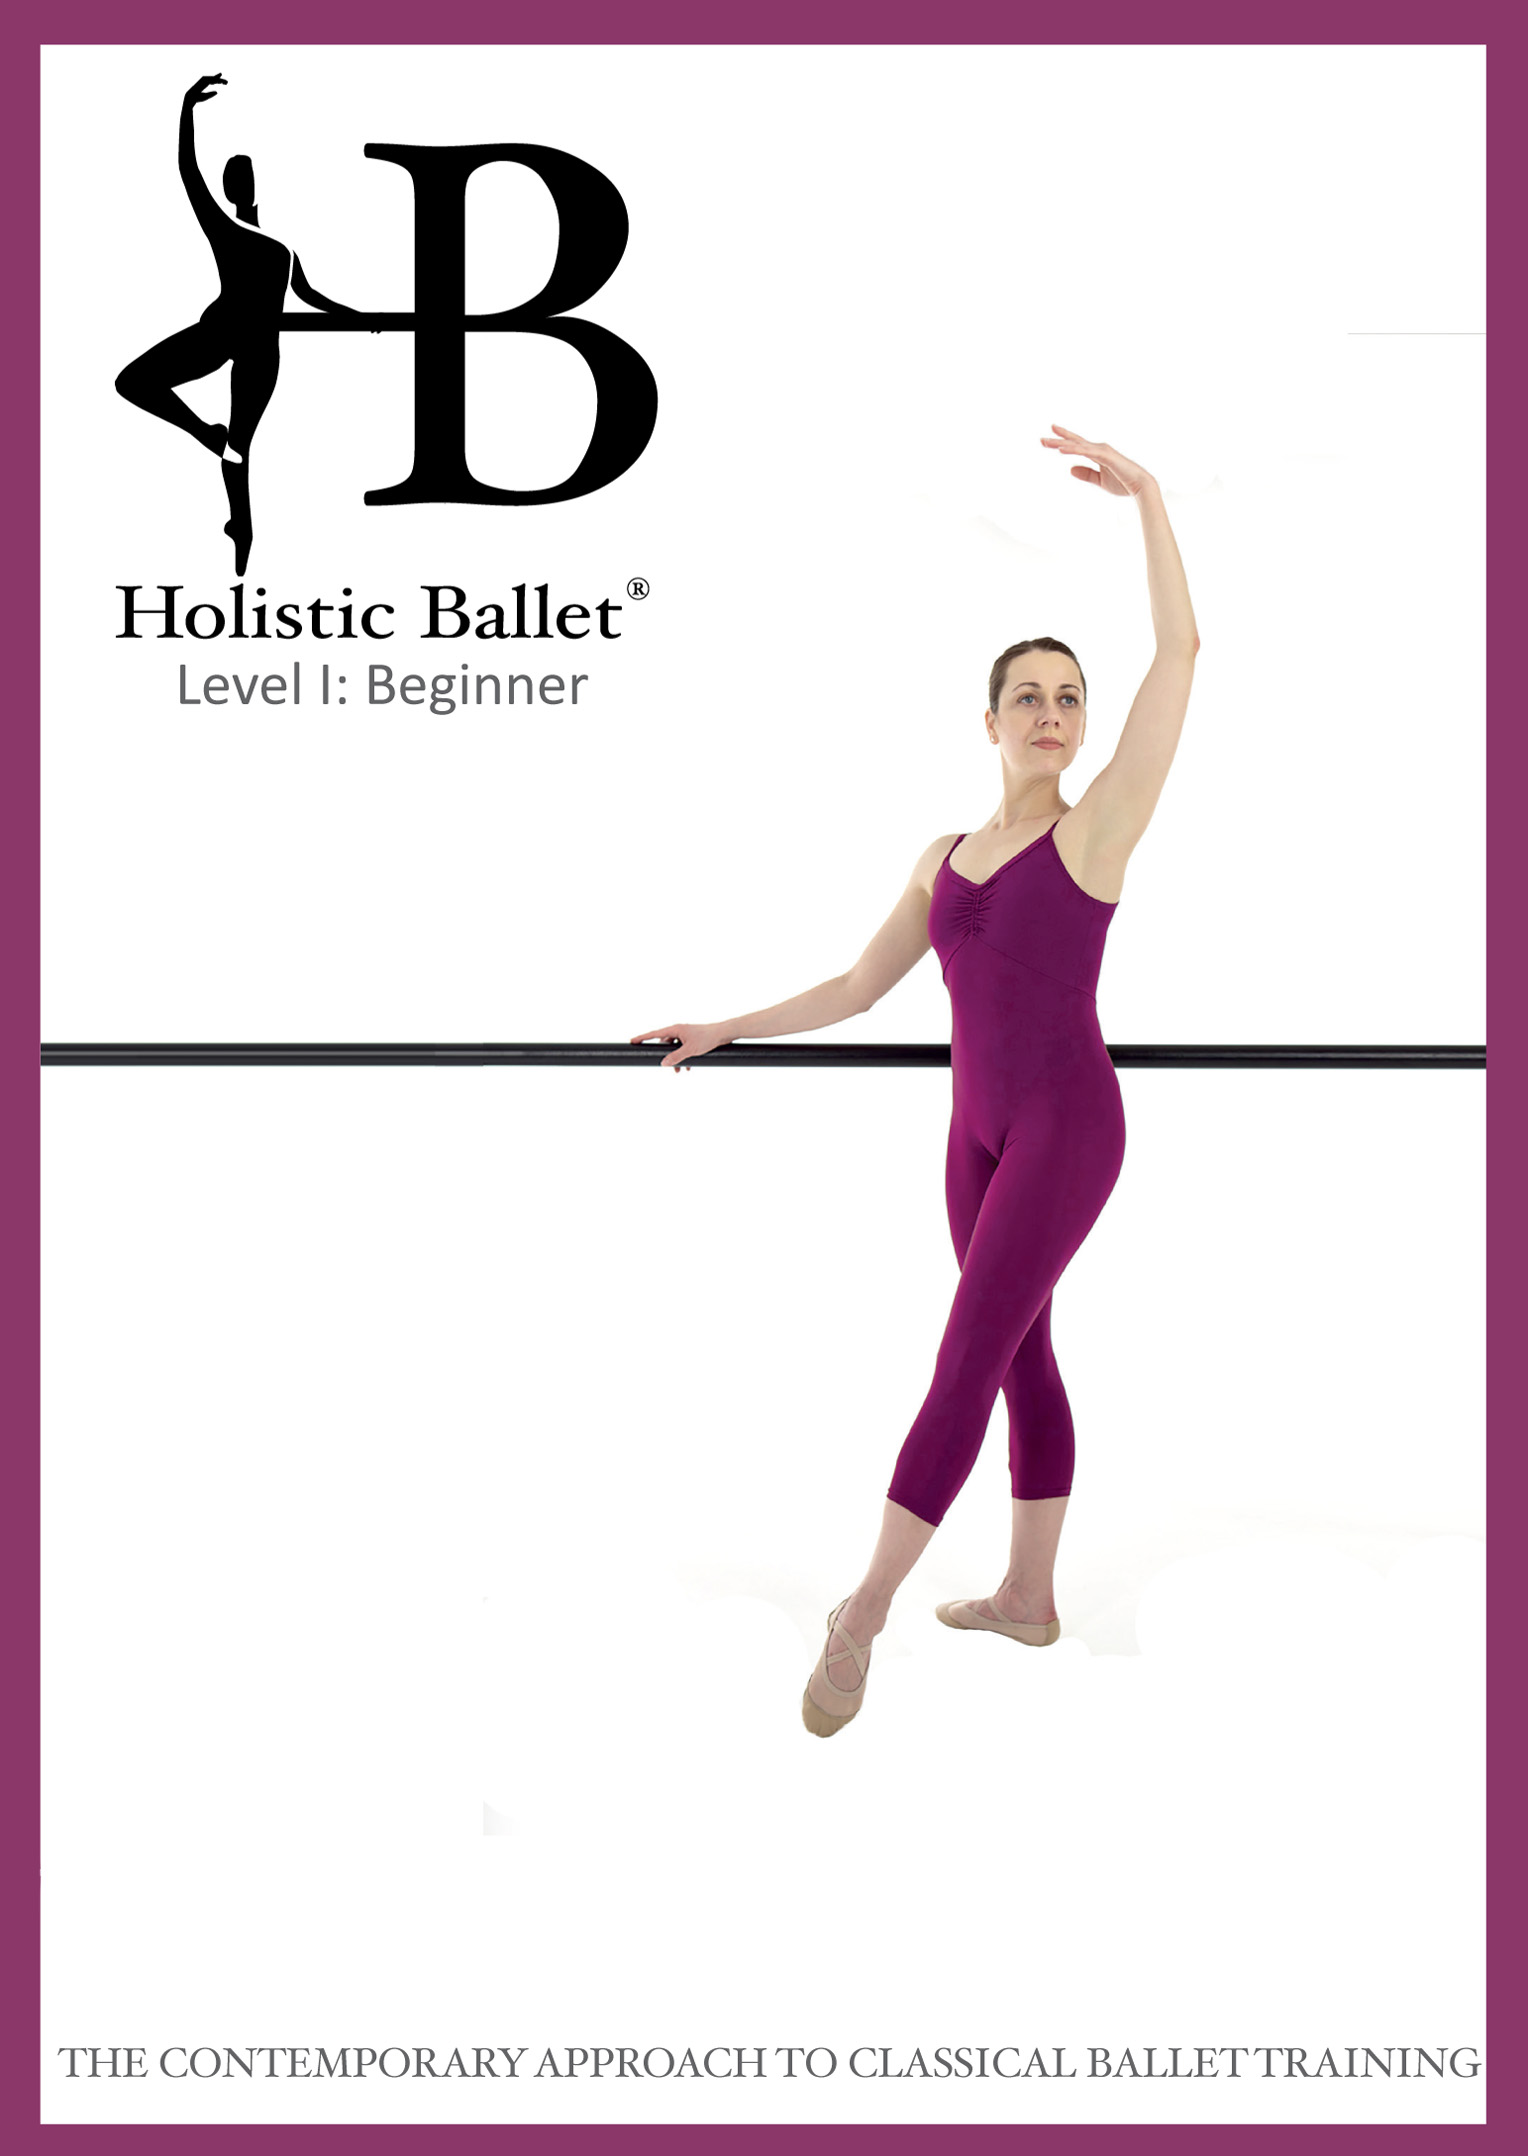 Pointe Work Technique class with Franziska Rosenzweig at Danceworks in Central London